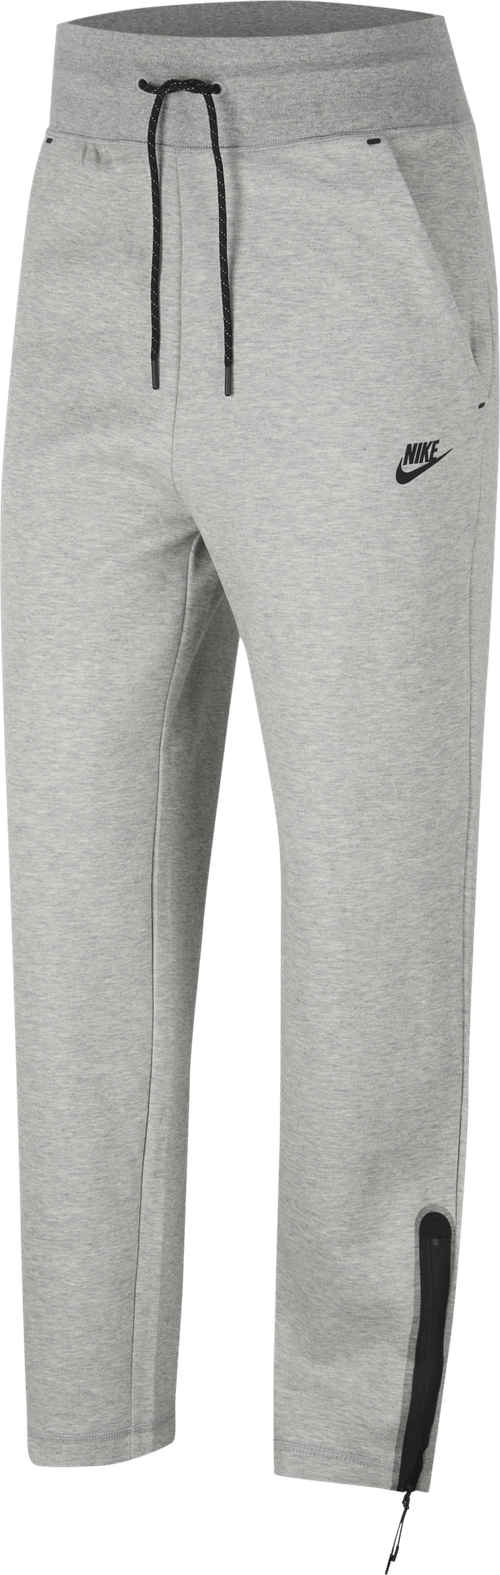 Sportswear Women'S Tech Fleece Pants Dk Grey Heather/Black